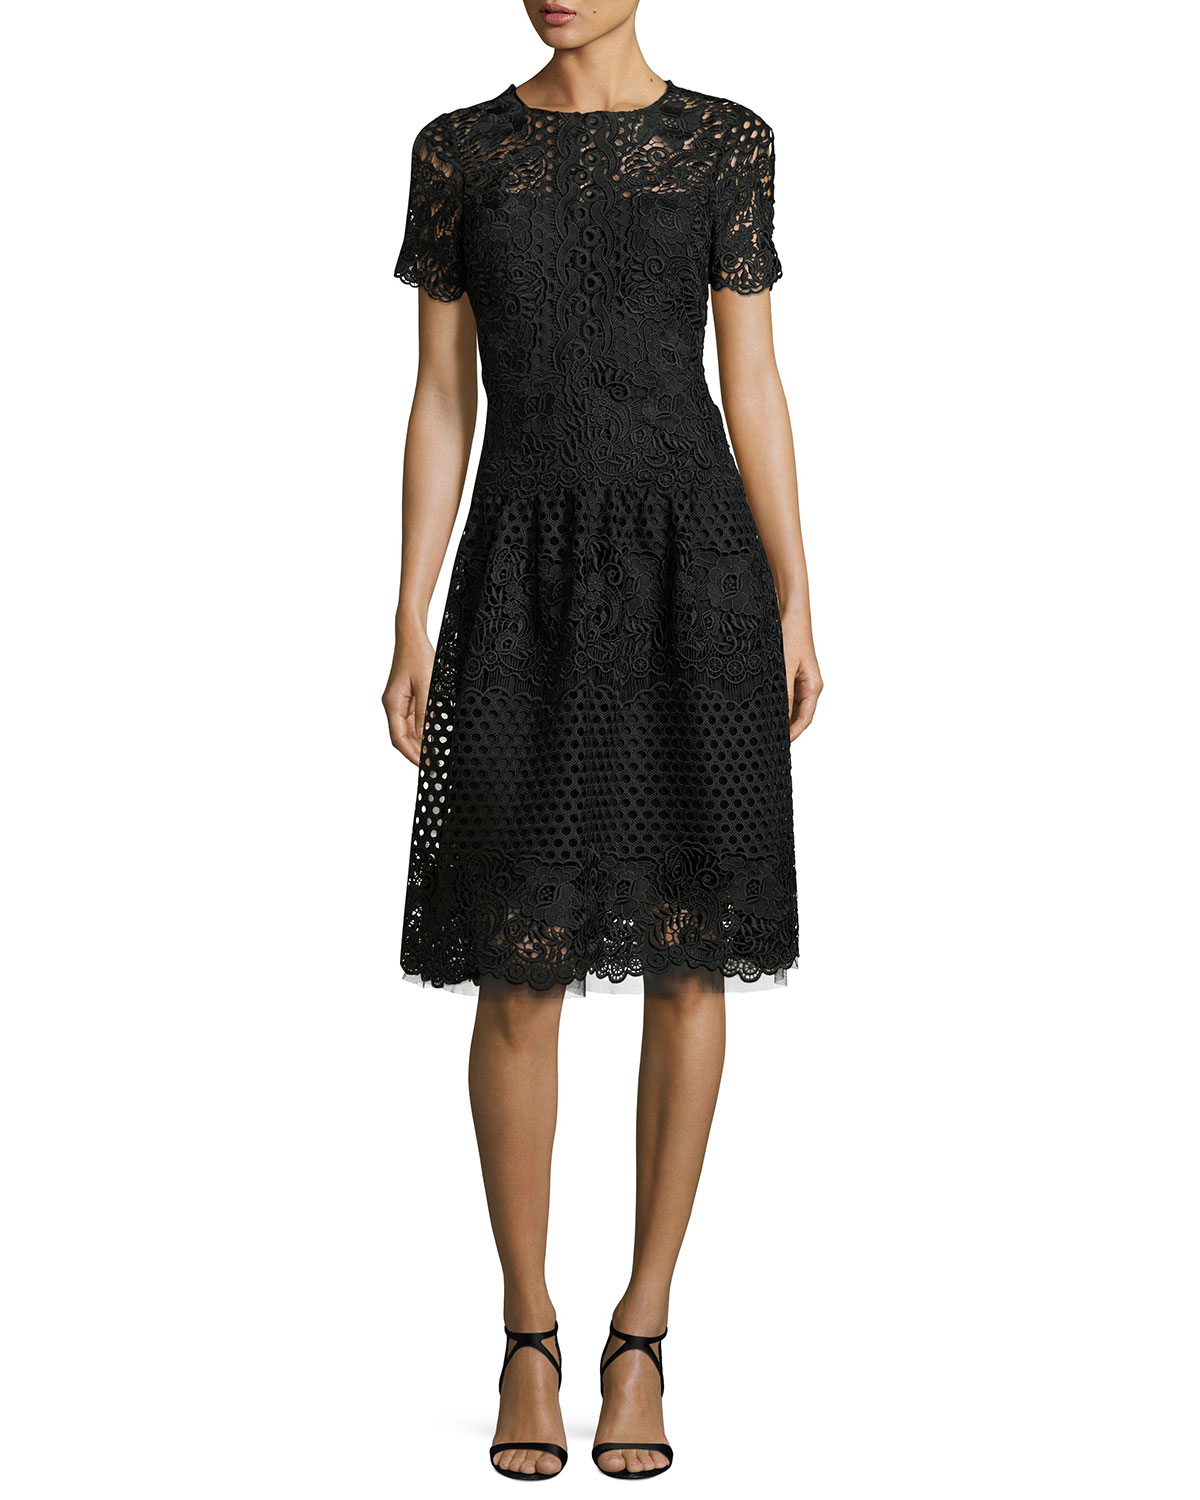 Short-Sleeve Eyelet Lace Cocktail Dress, Black